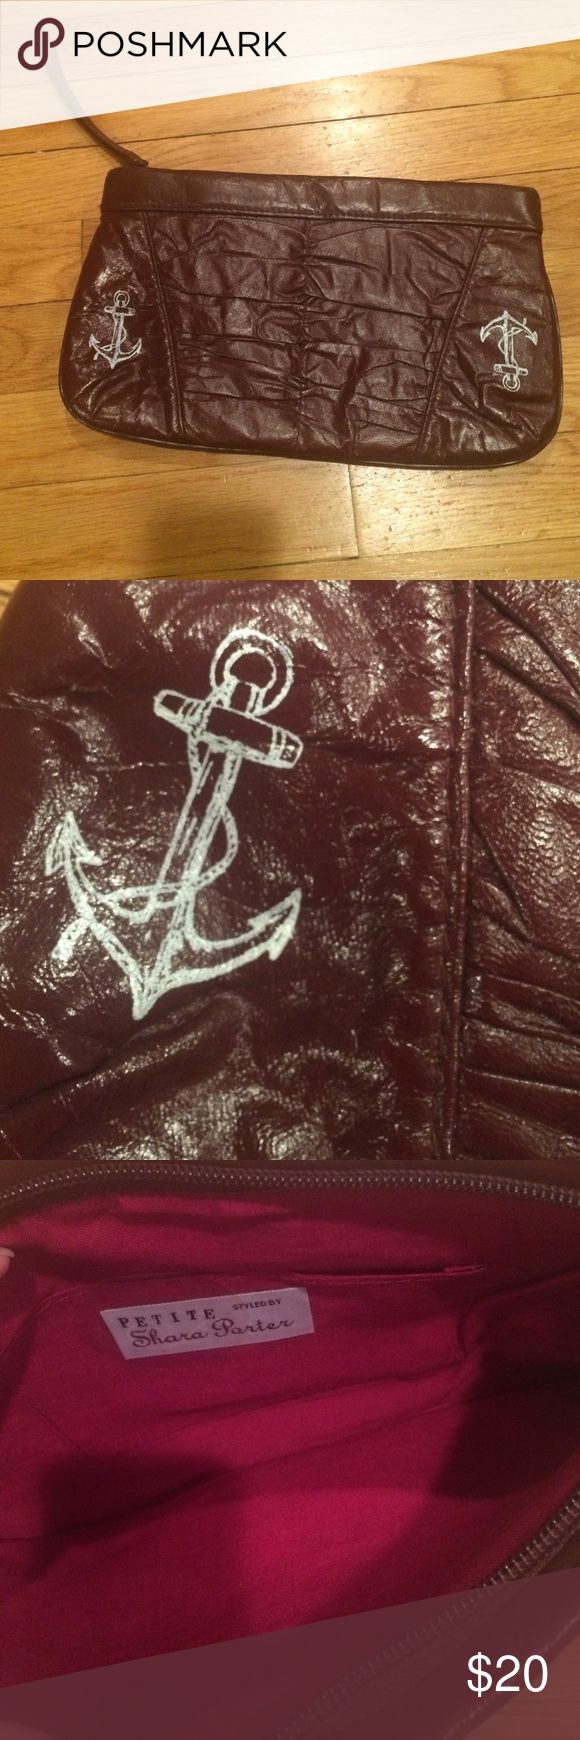 Vintage Anchor Clutch This Clutch is very unique! Love the Burgandy color and the Anchors. I used it once or twice. Inside looks new! Bags Clutches & Wristlets